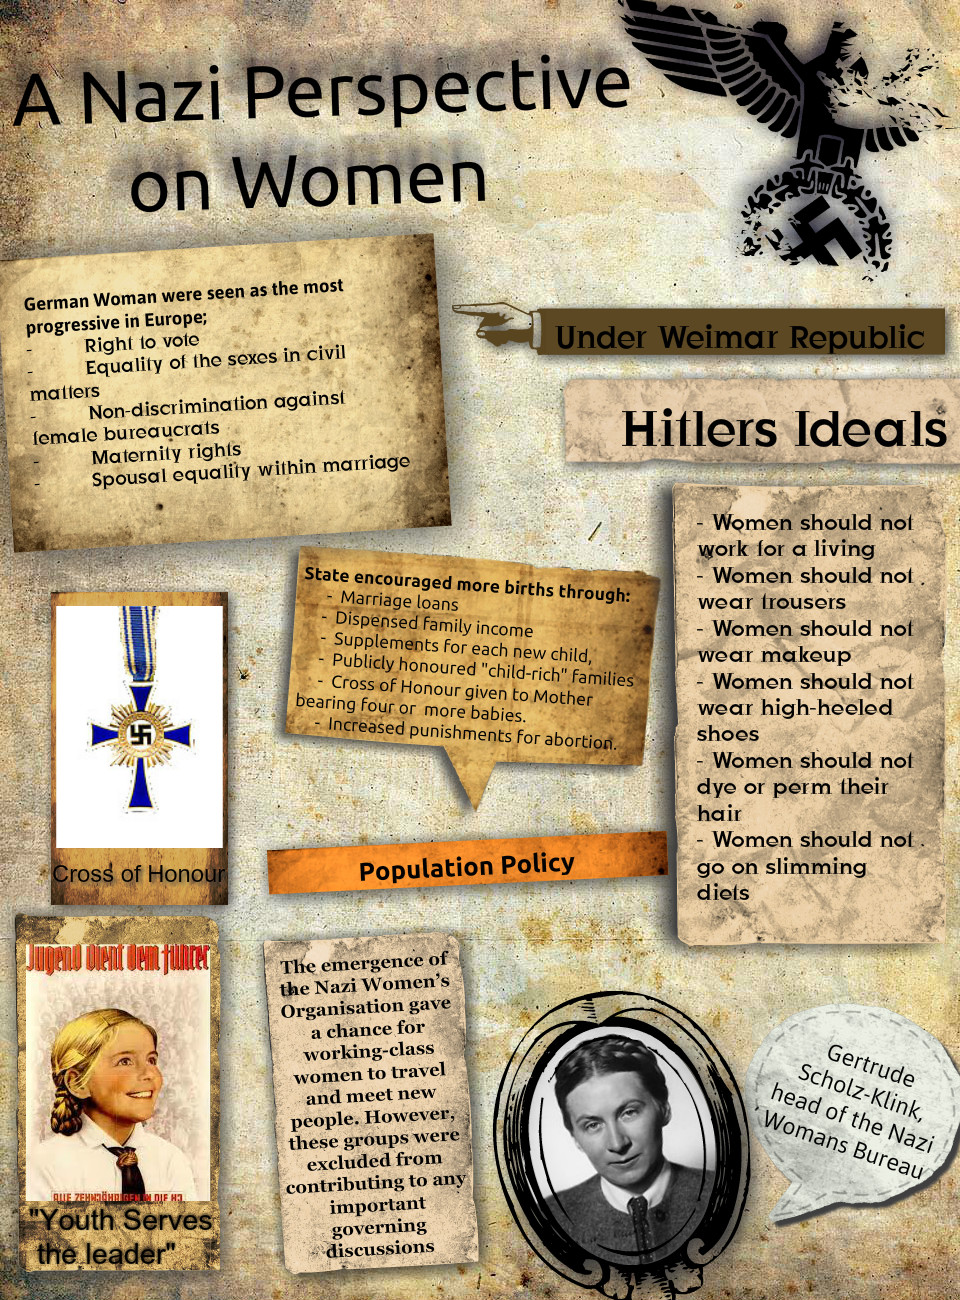 A Nazi Perspective on Women